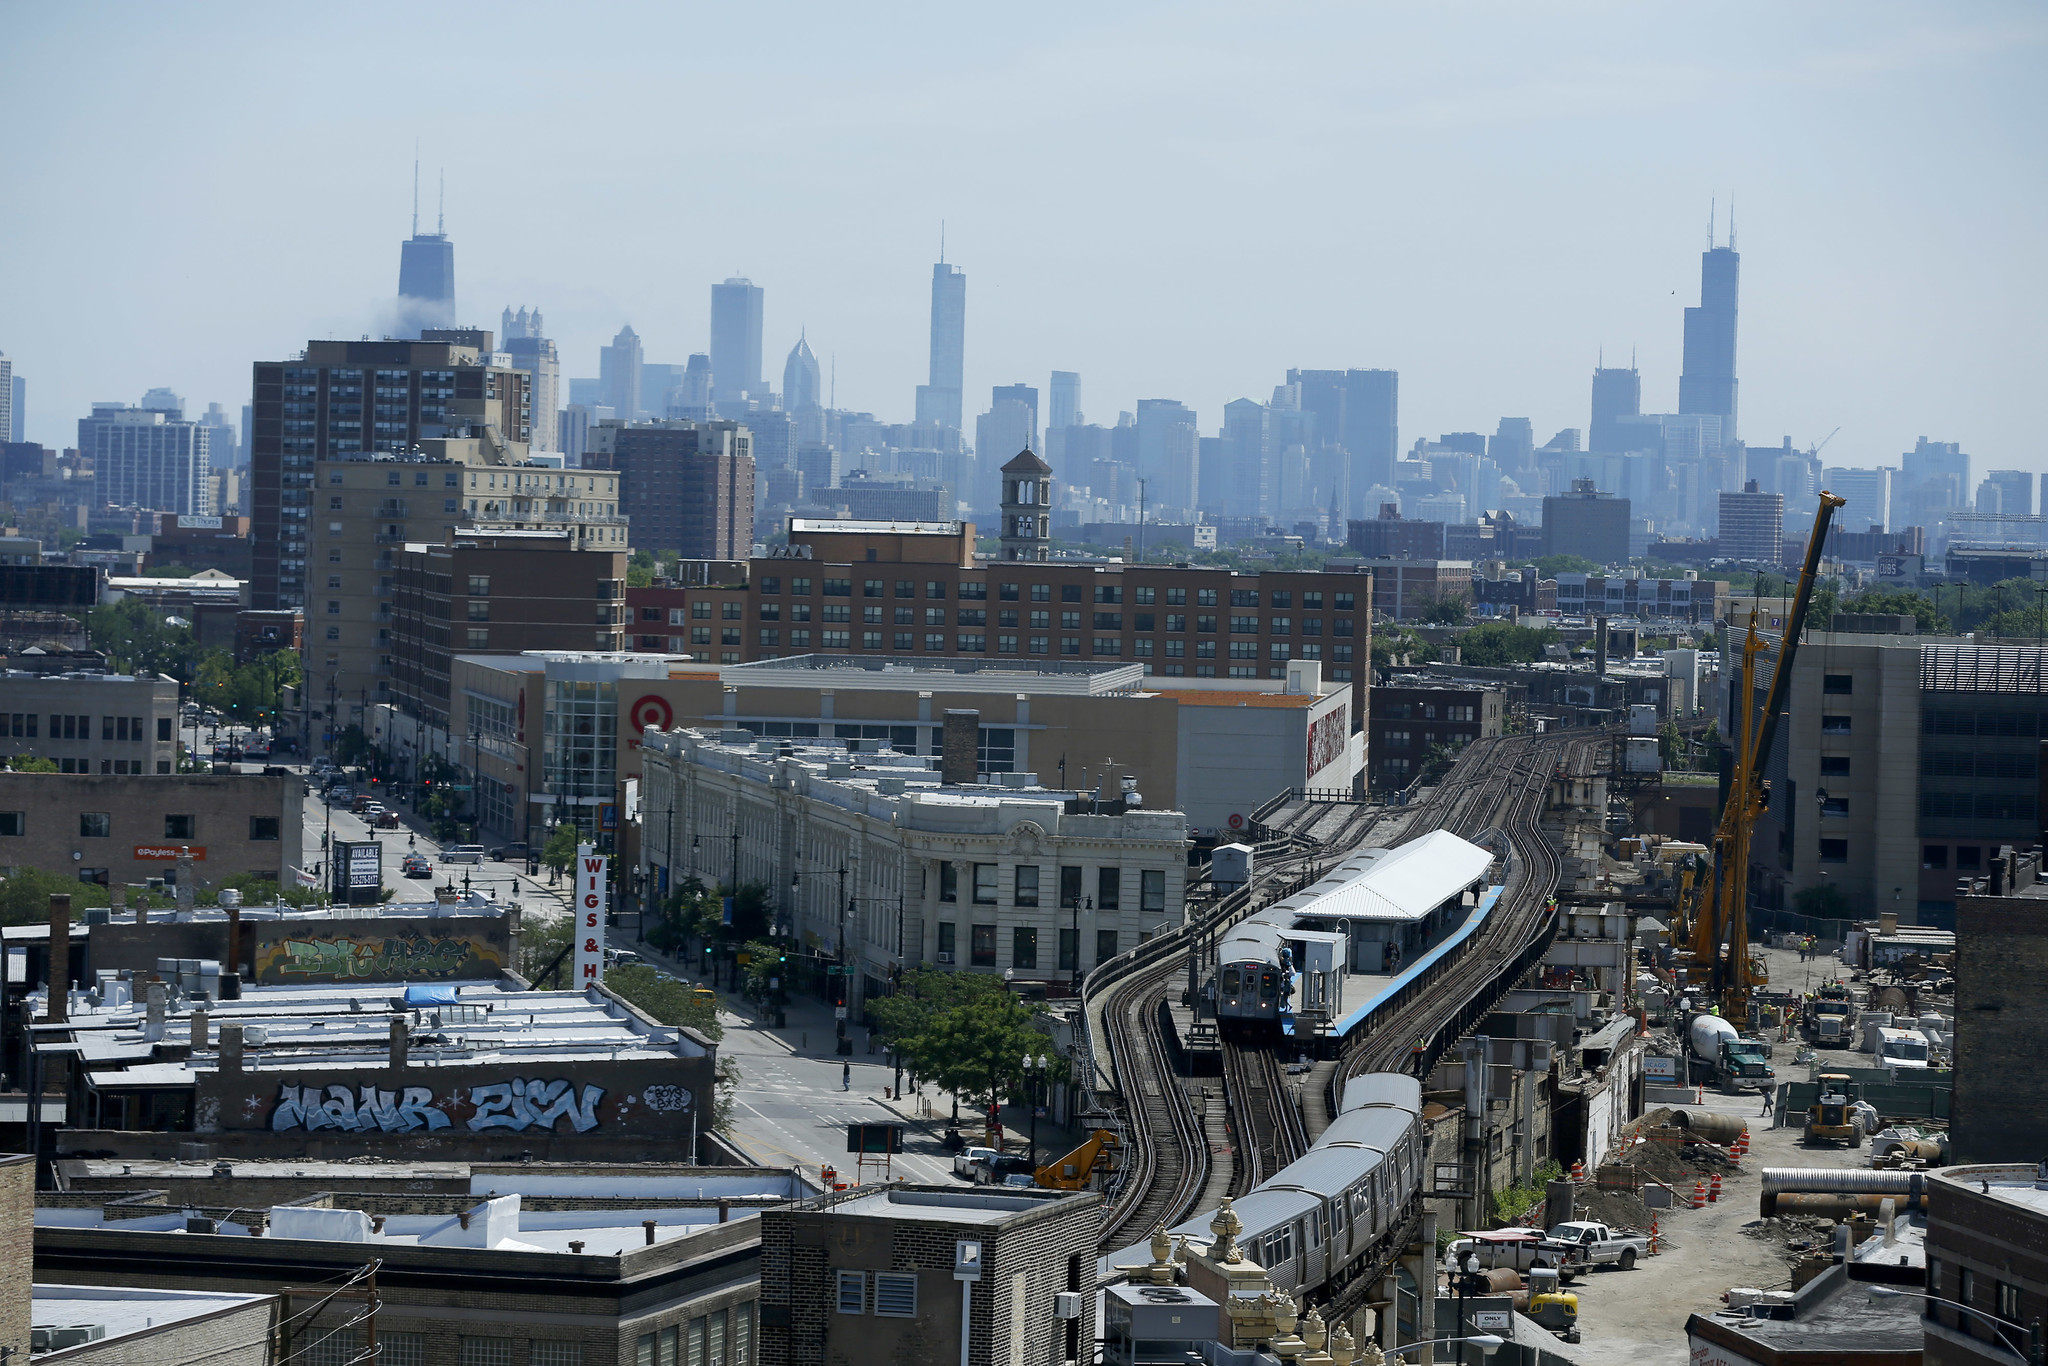 Uptown Chicago Property Values